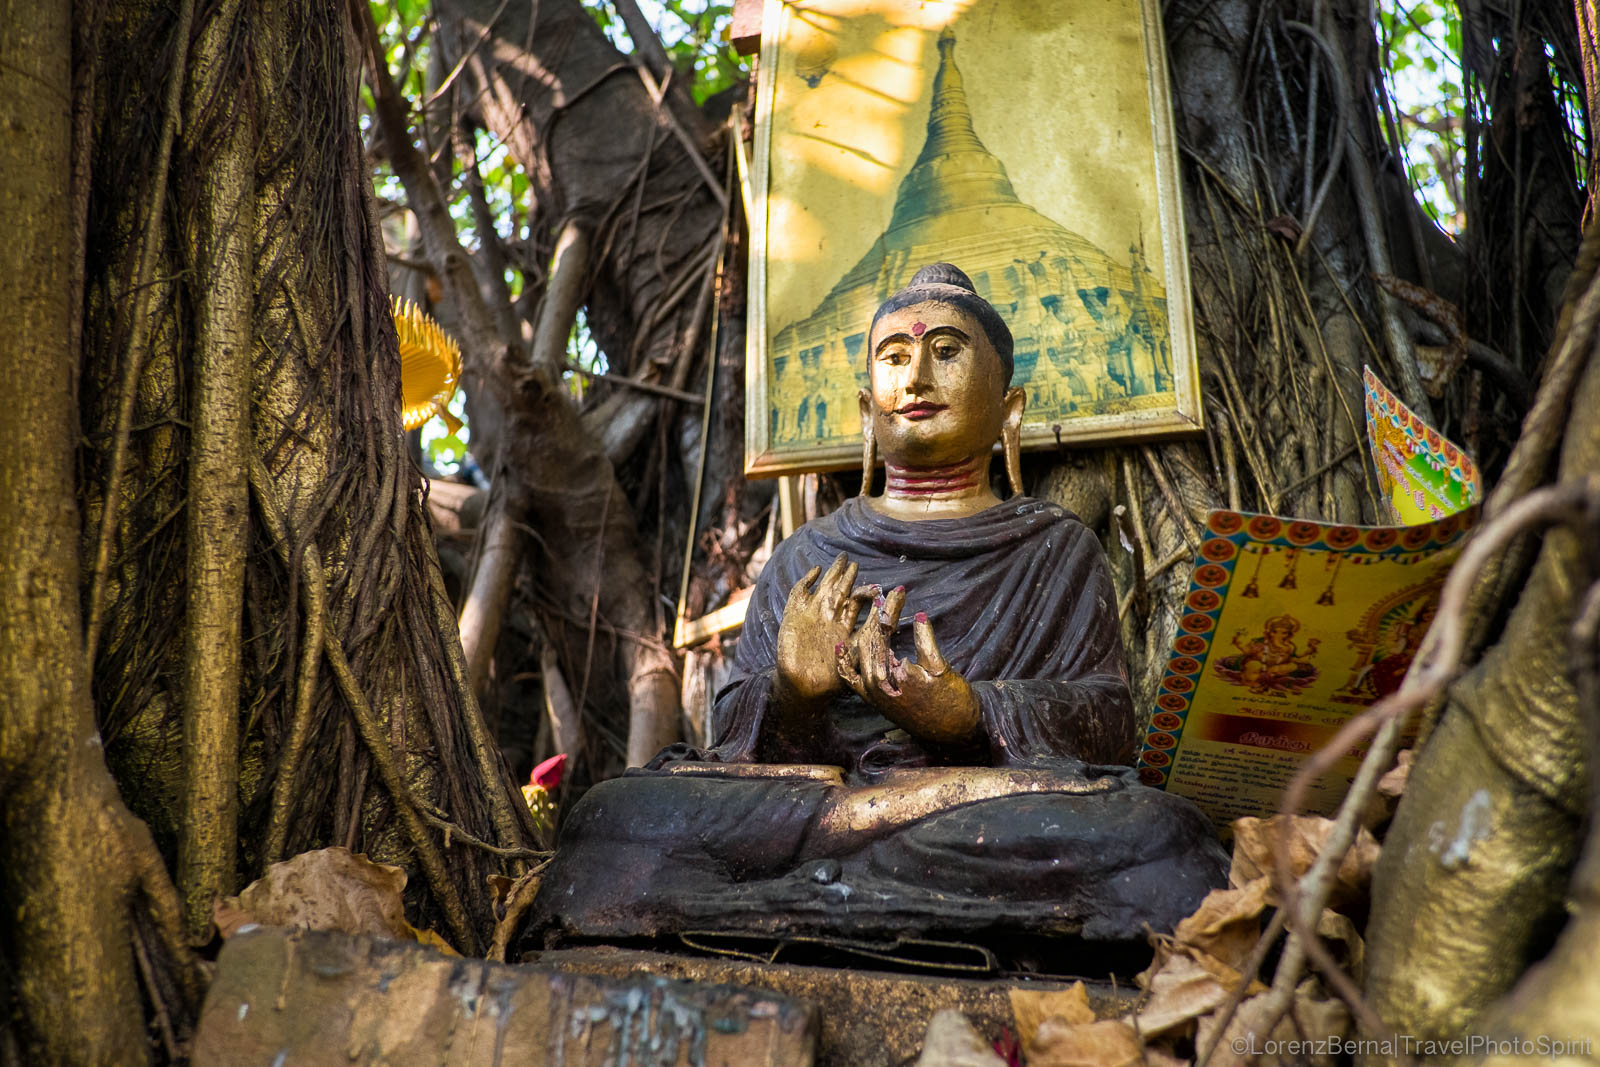 A Buddha statue nestled in the trunk of a banyan tree, in Yangon, Myanmar